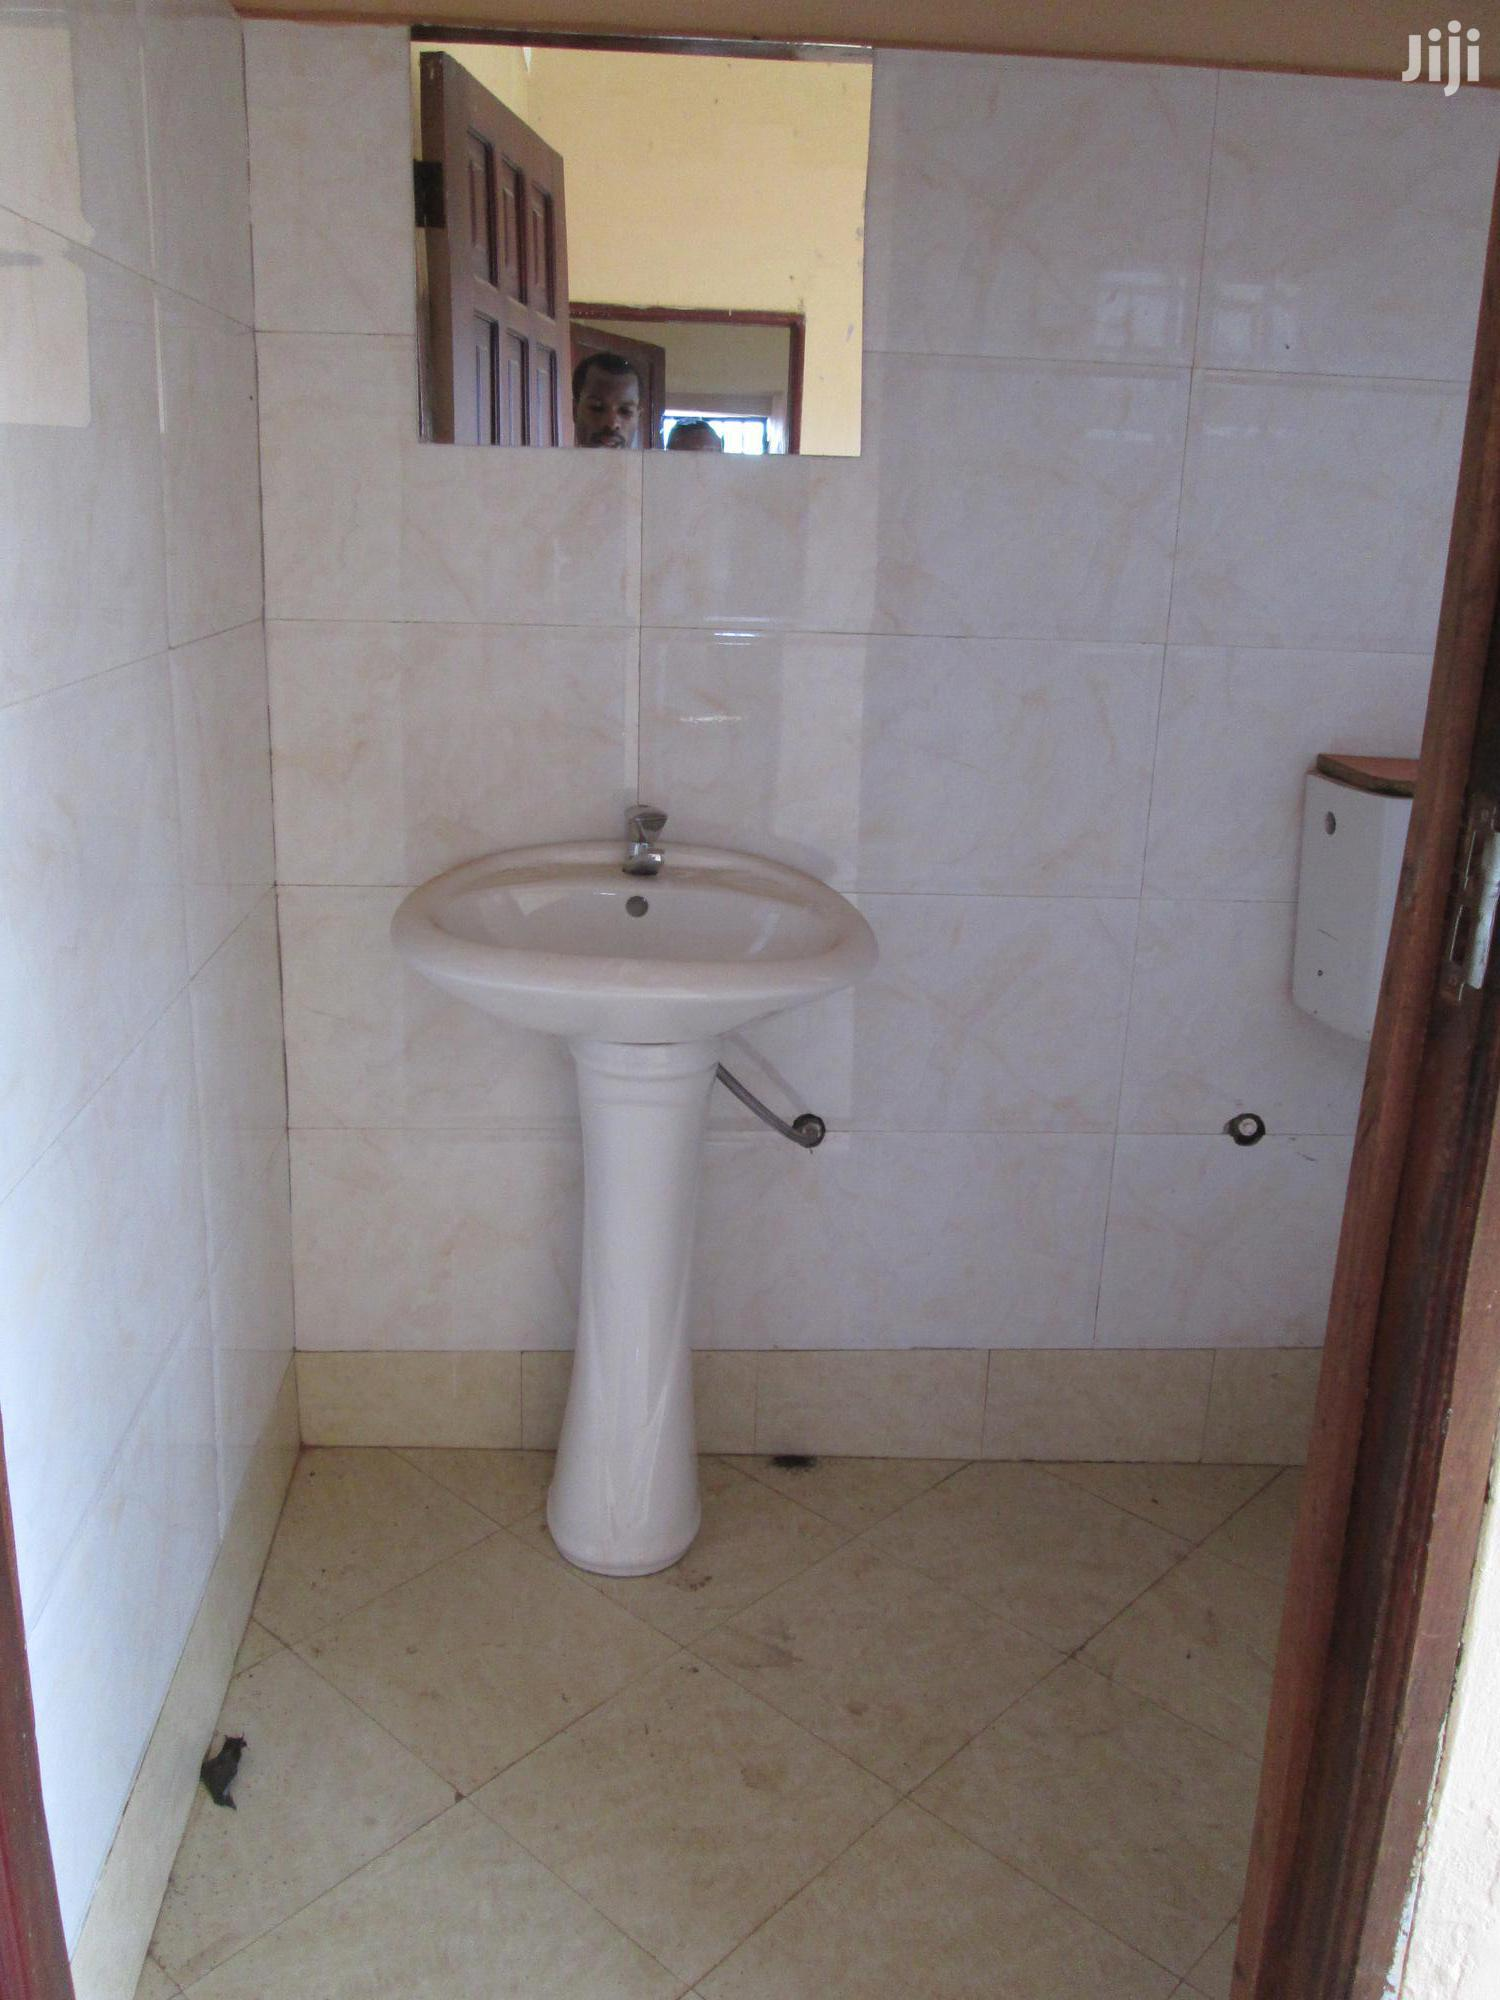 Four Bedroom House For Sale | Houses & Apartments For Sale for sale in Kampala, Central Region, Uganda